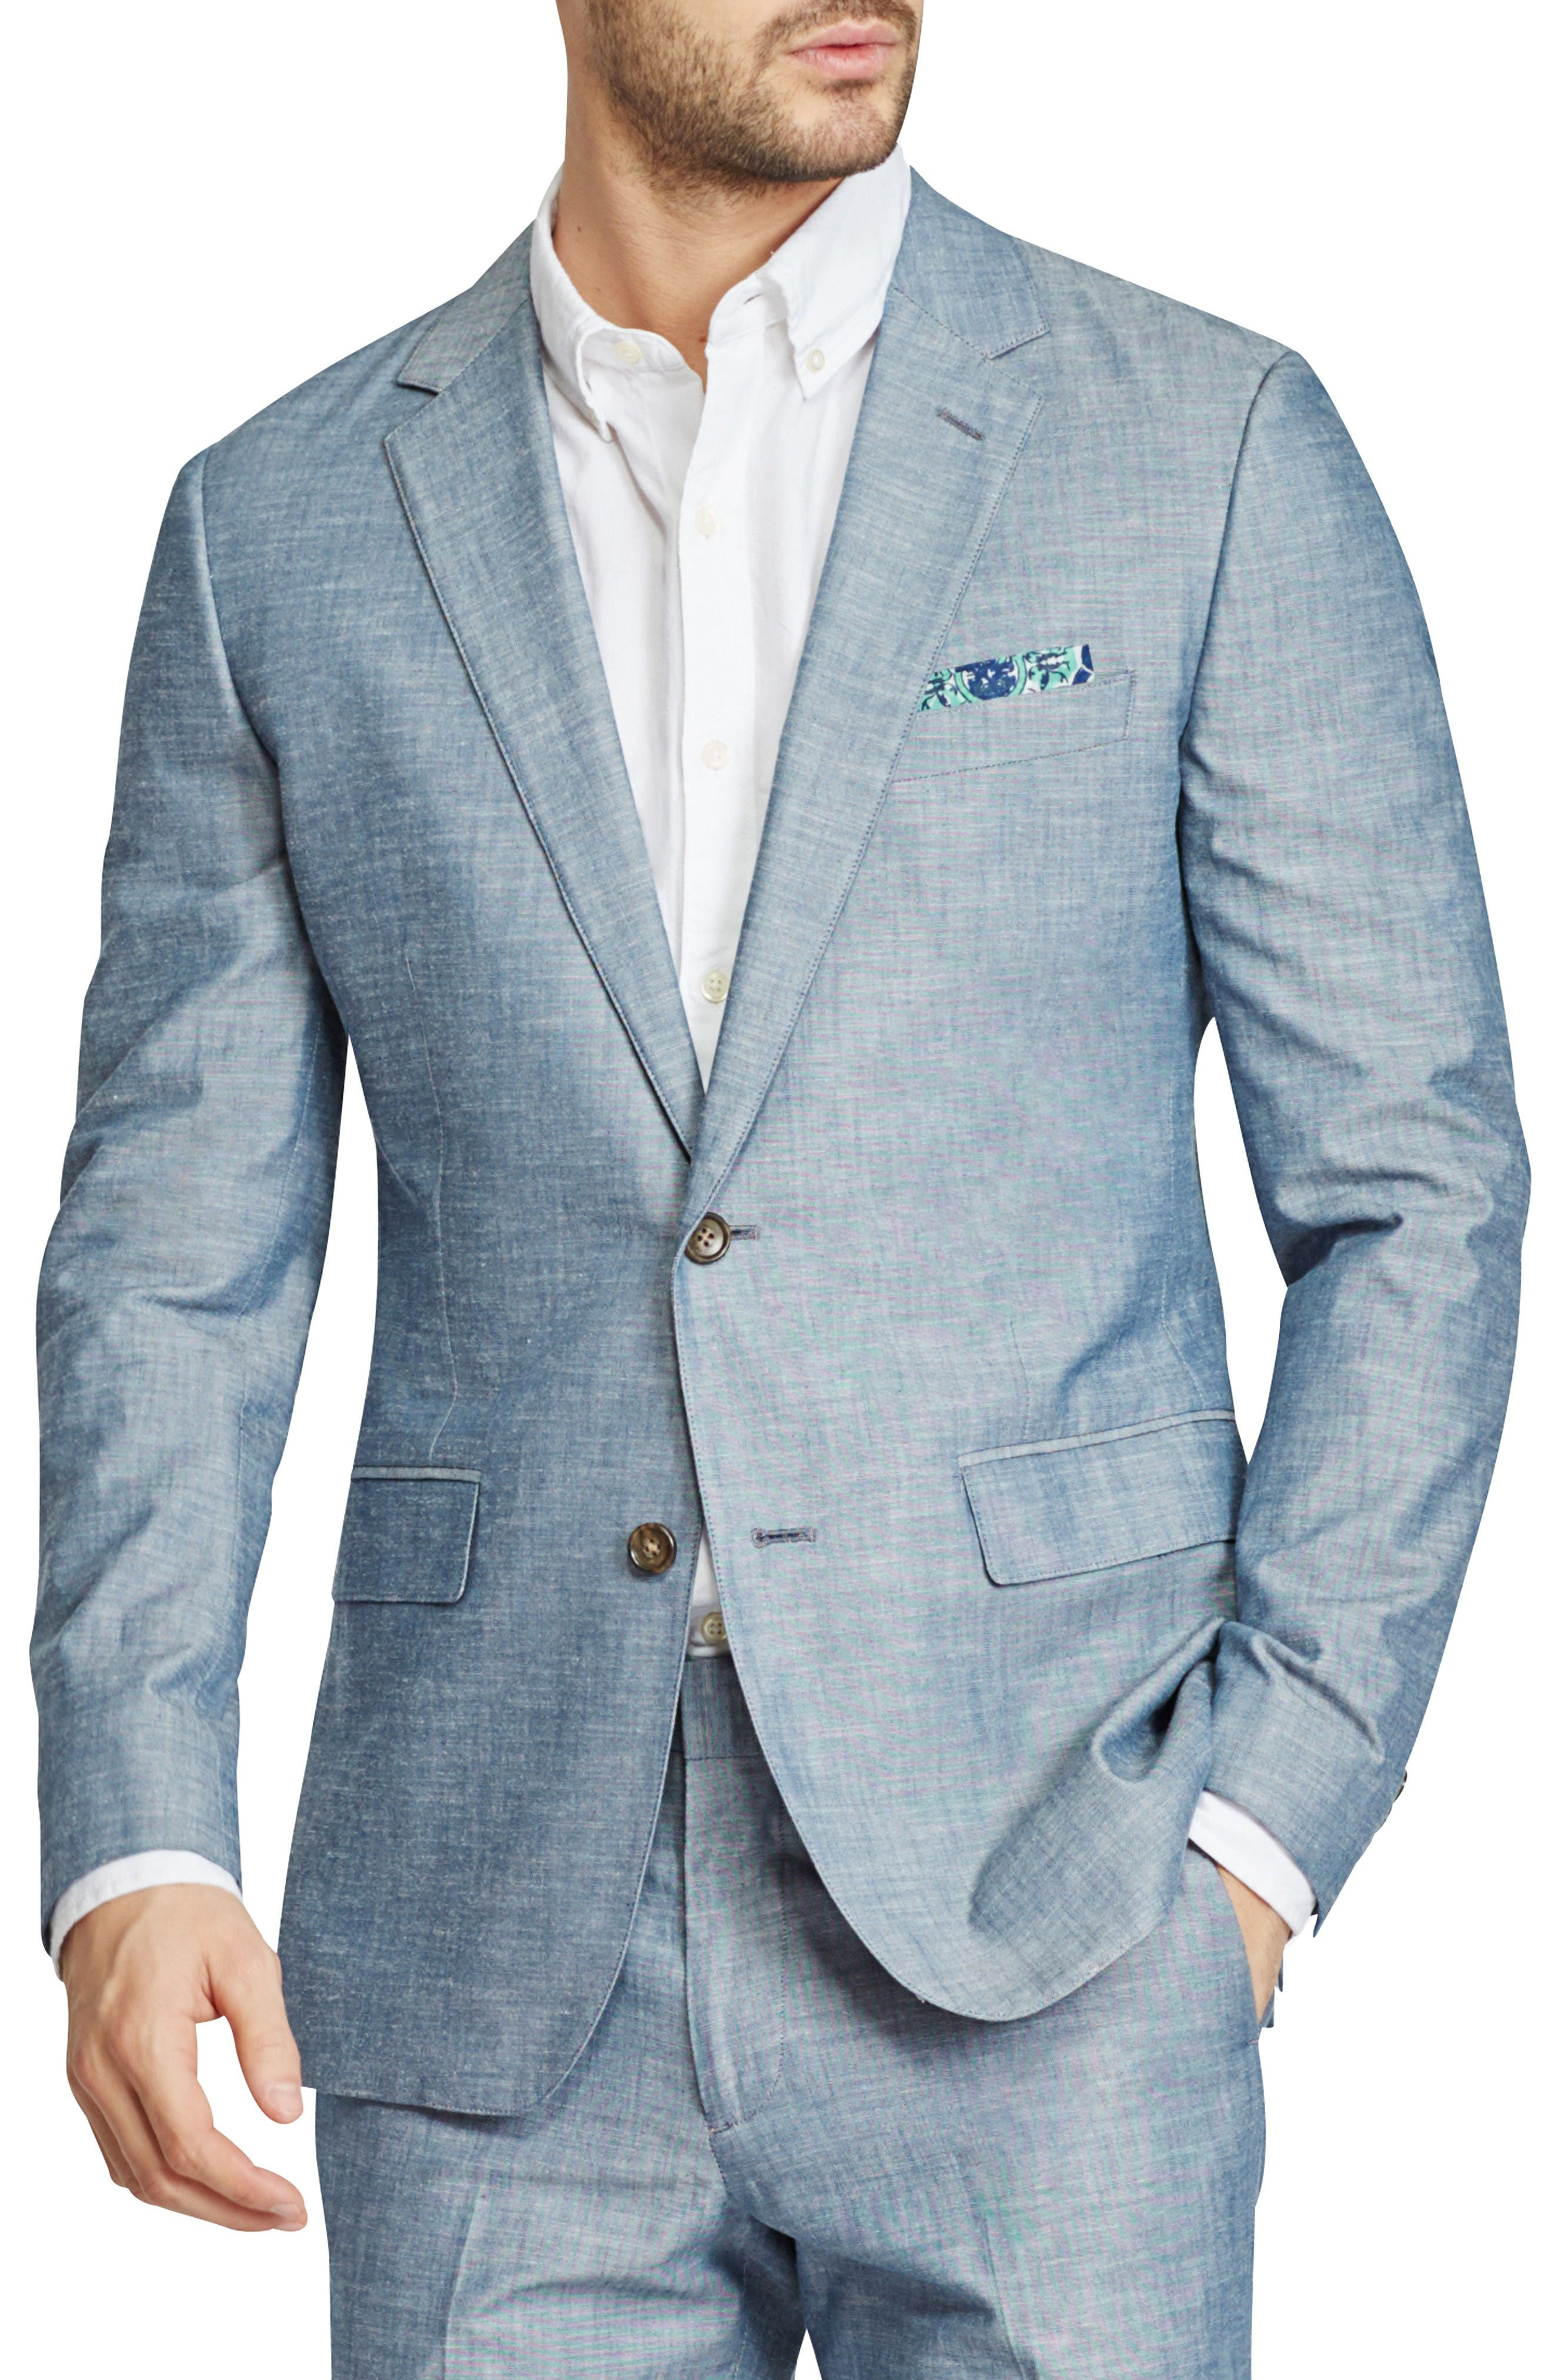 Trim Fit Chambray Cotton Blazer,                             Main thumbnail 1, color,                             Solid Blue